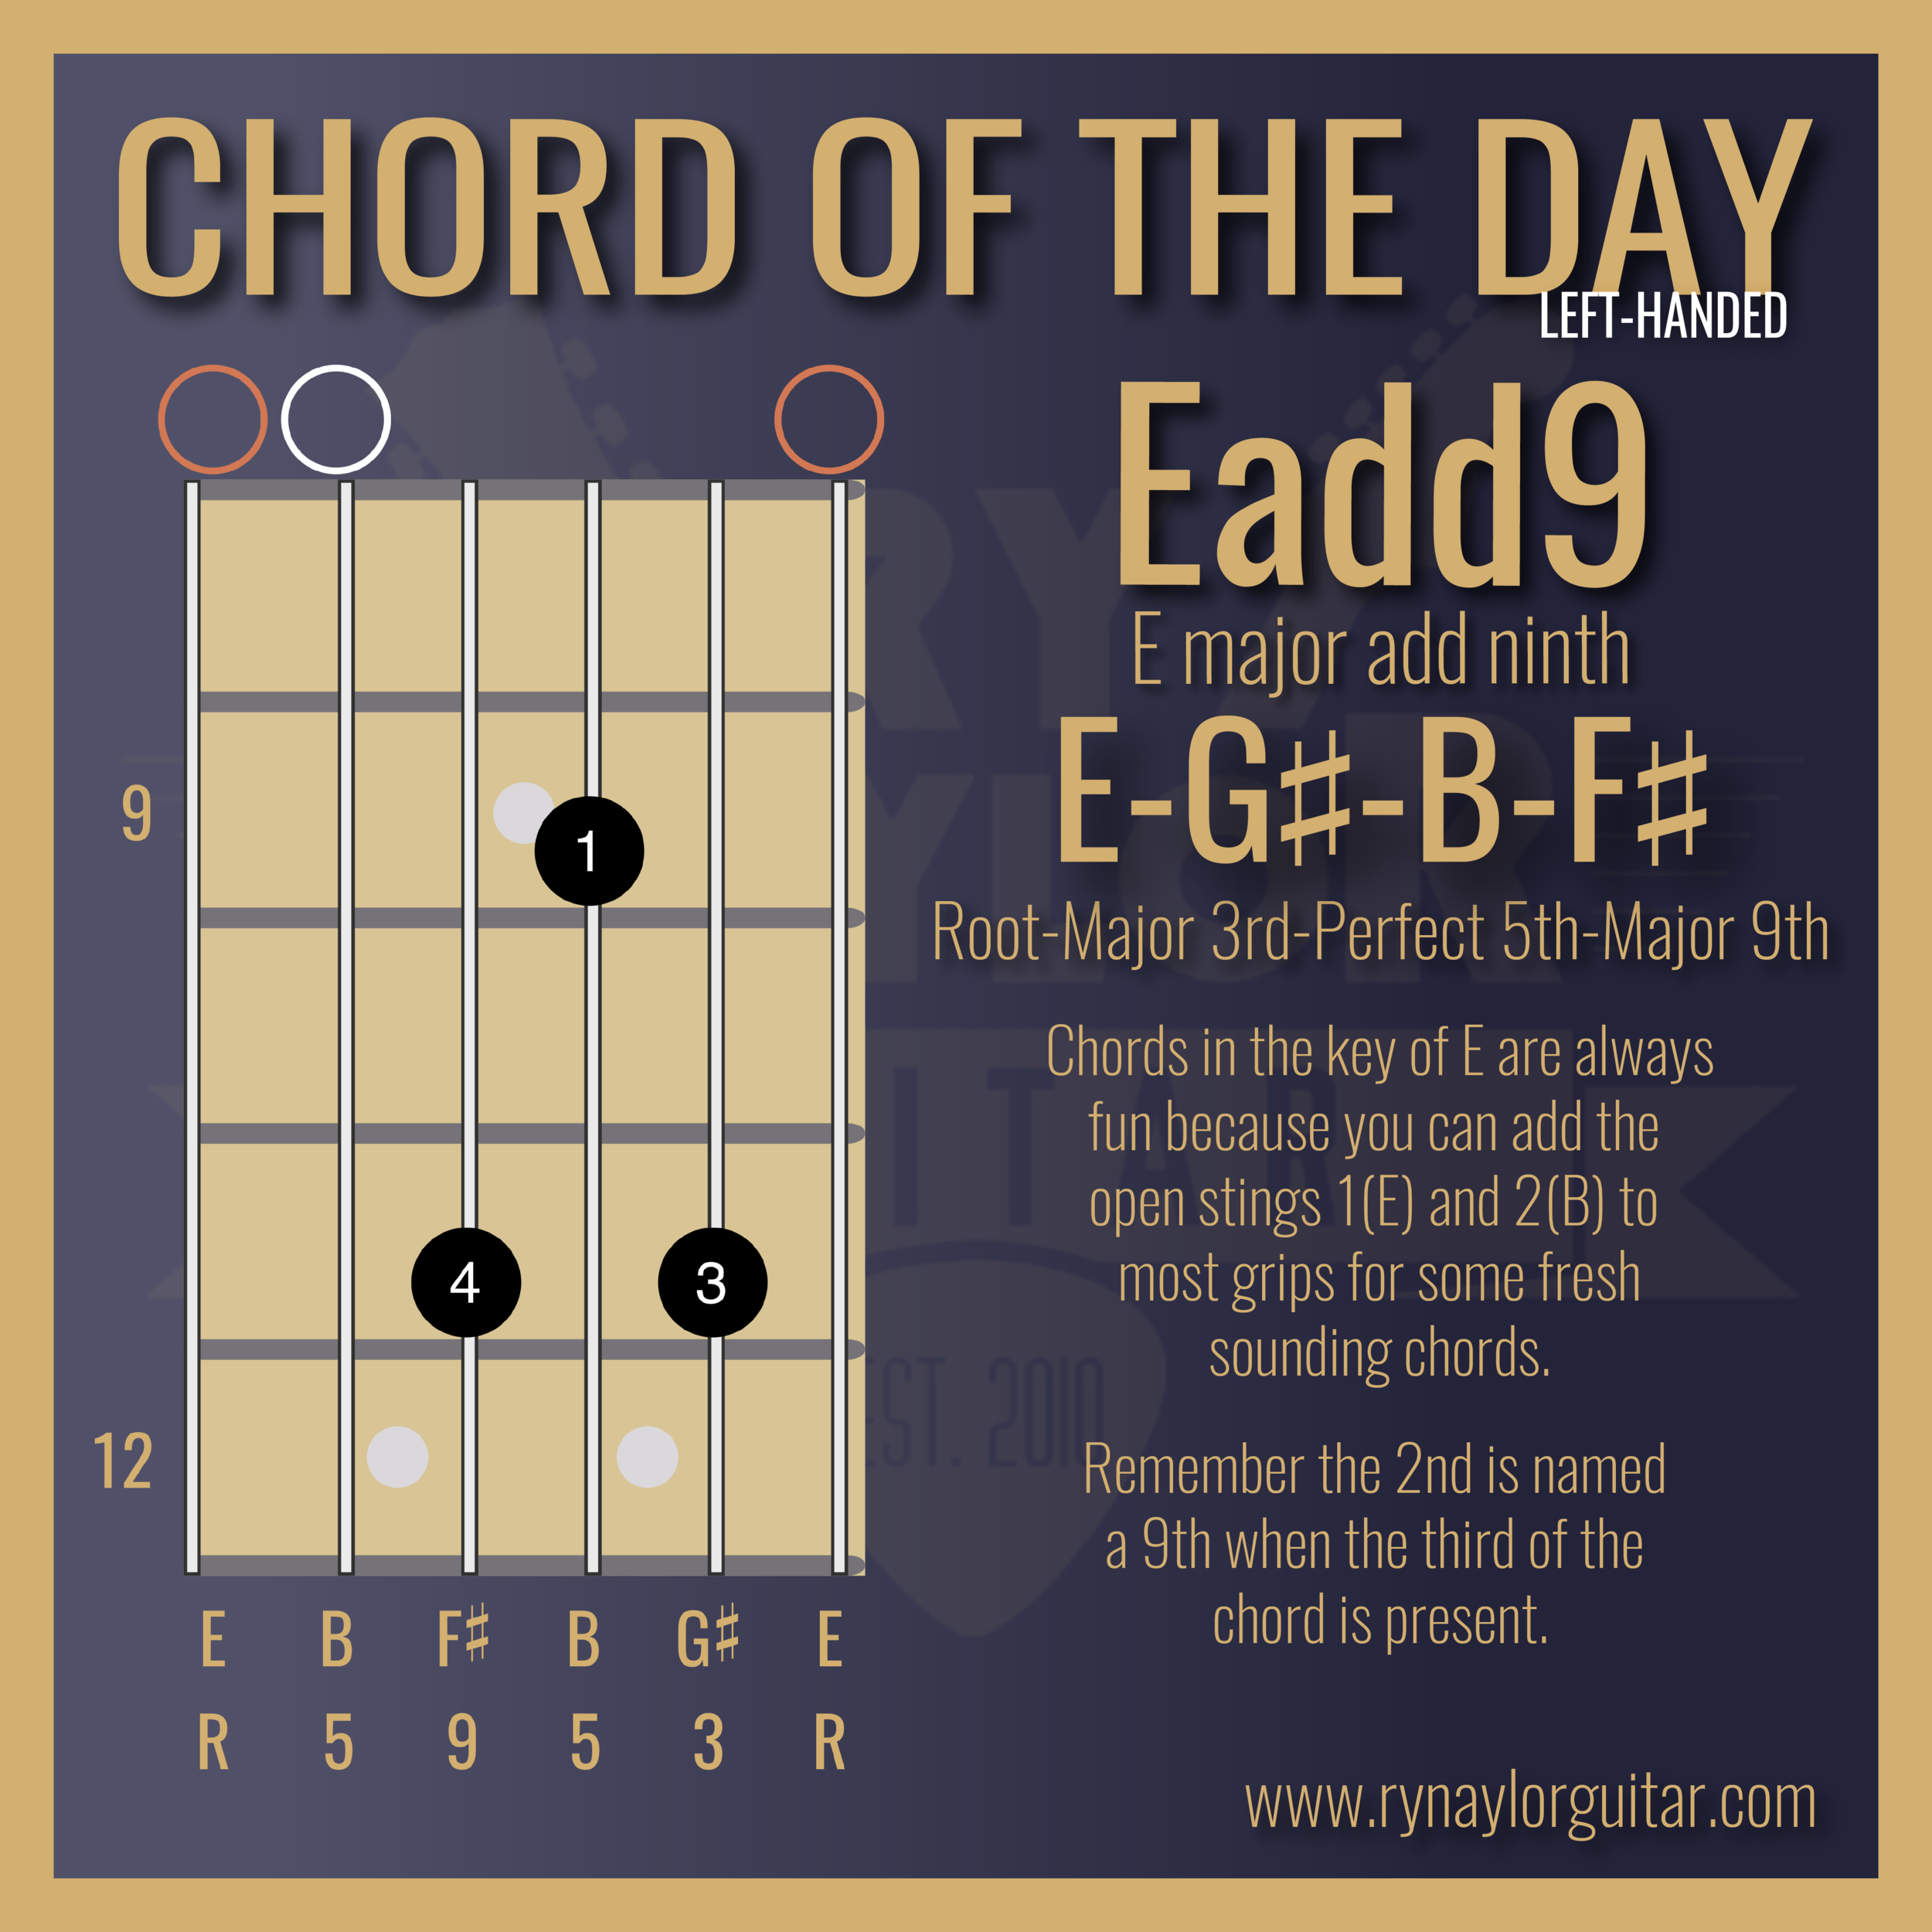 Eadd9 Chord of the Day (LH).png